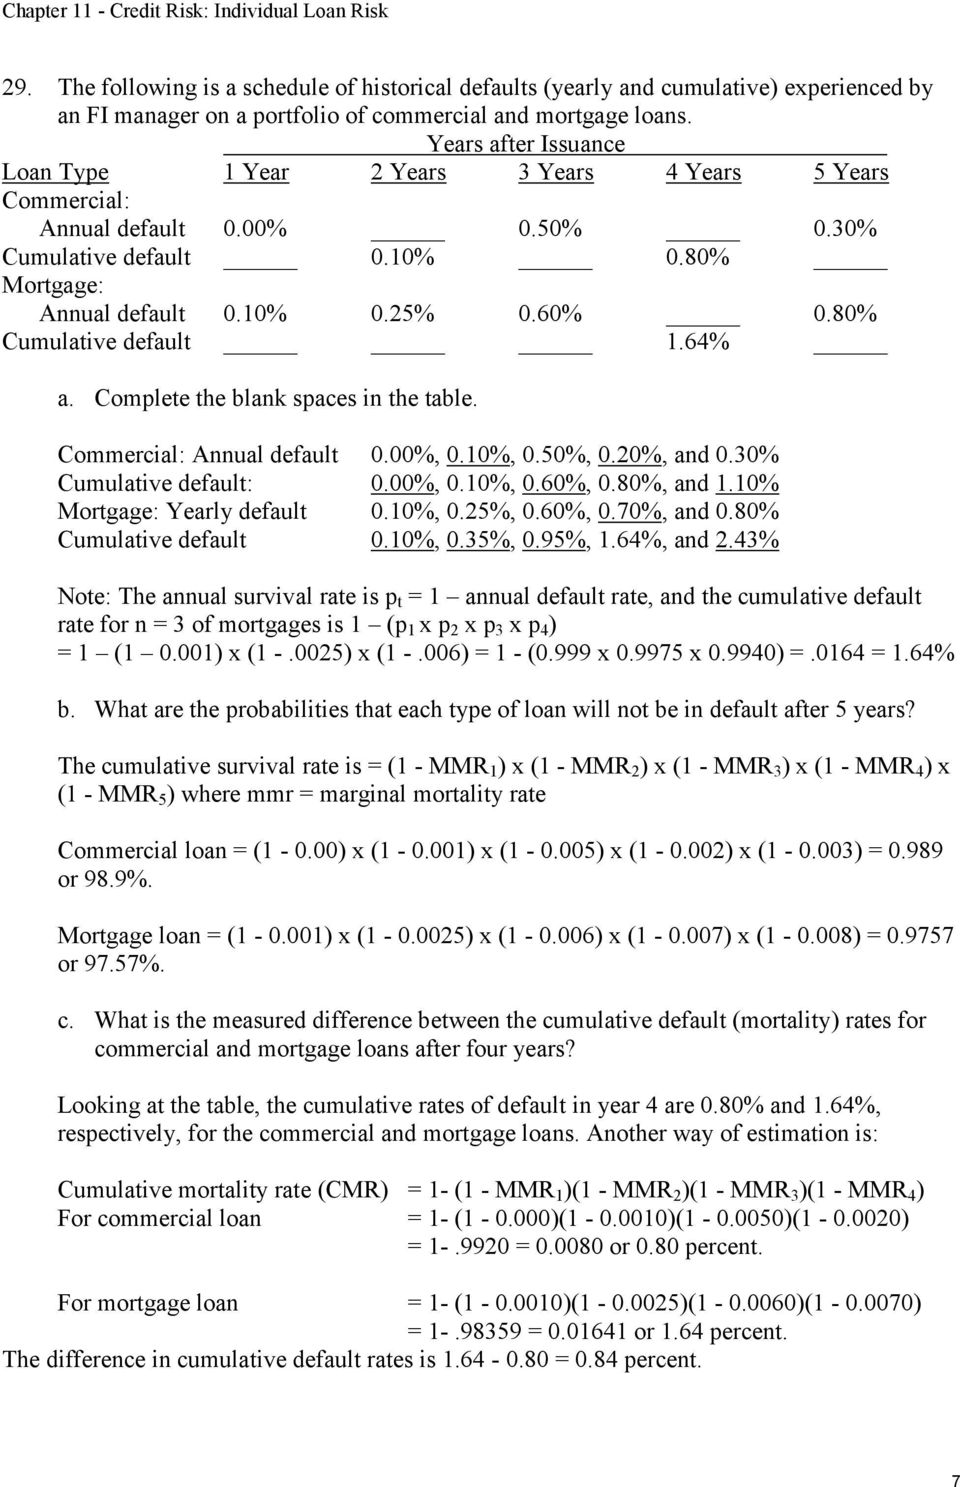 80% Cumulative default 1.64% a. Complete the blank spaces in the table. Commercial: Annual default 0.00%, 0.10%, 0.50%, 0.20%, and 0.30% Cumulative default: 0.00%, 0.10%, 0.60%, 0.80%, and 1.